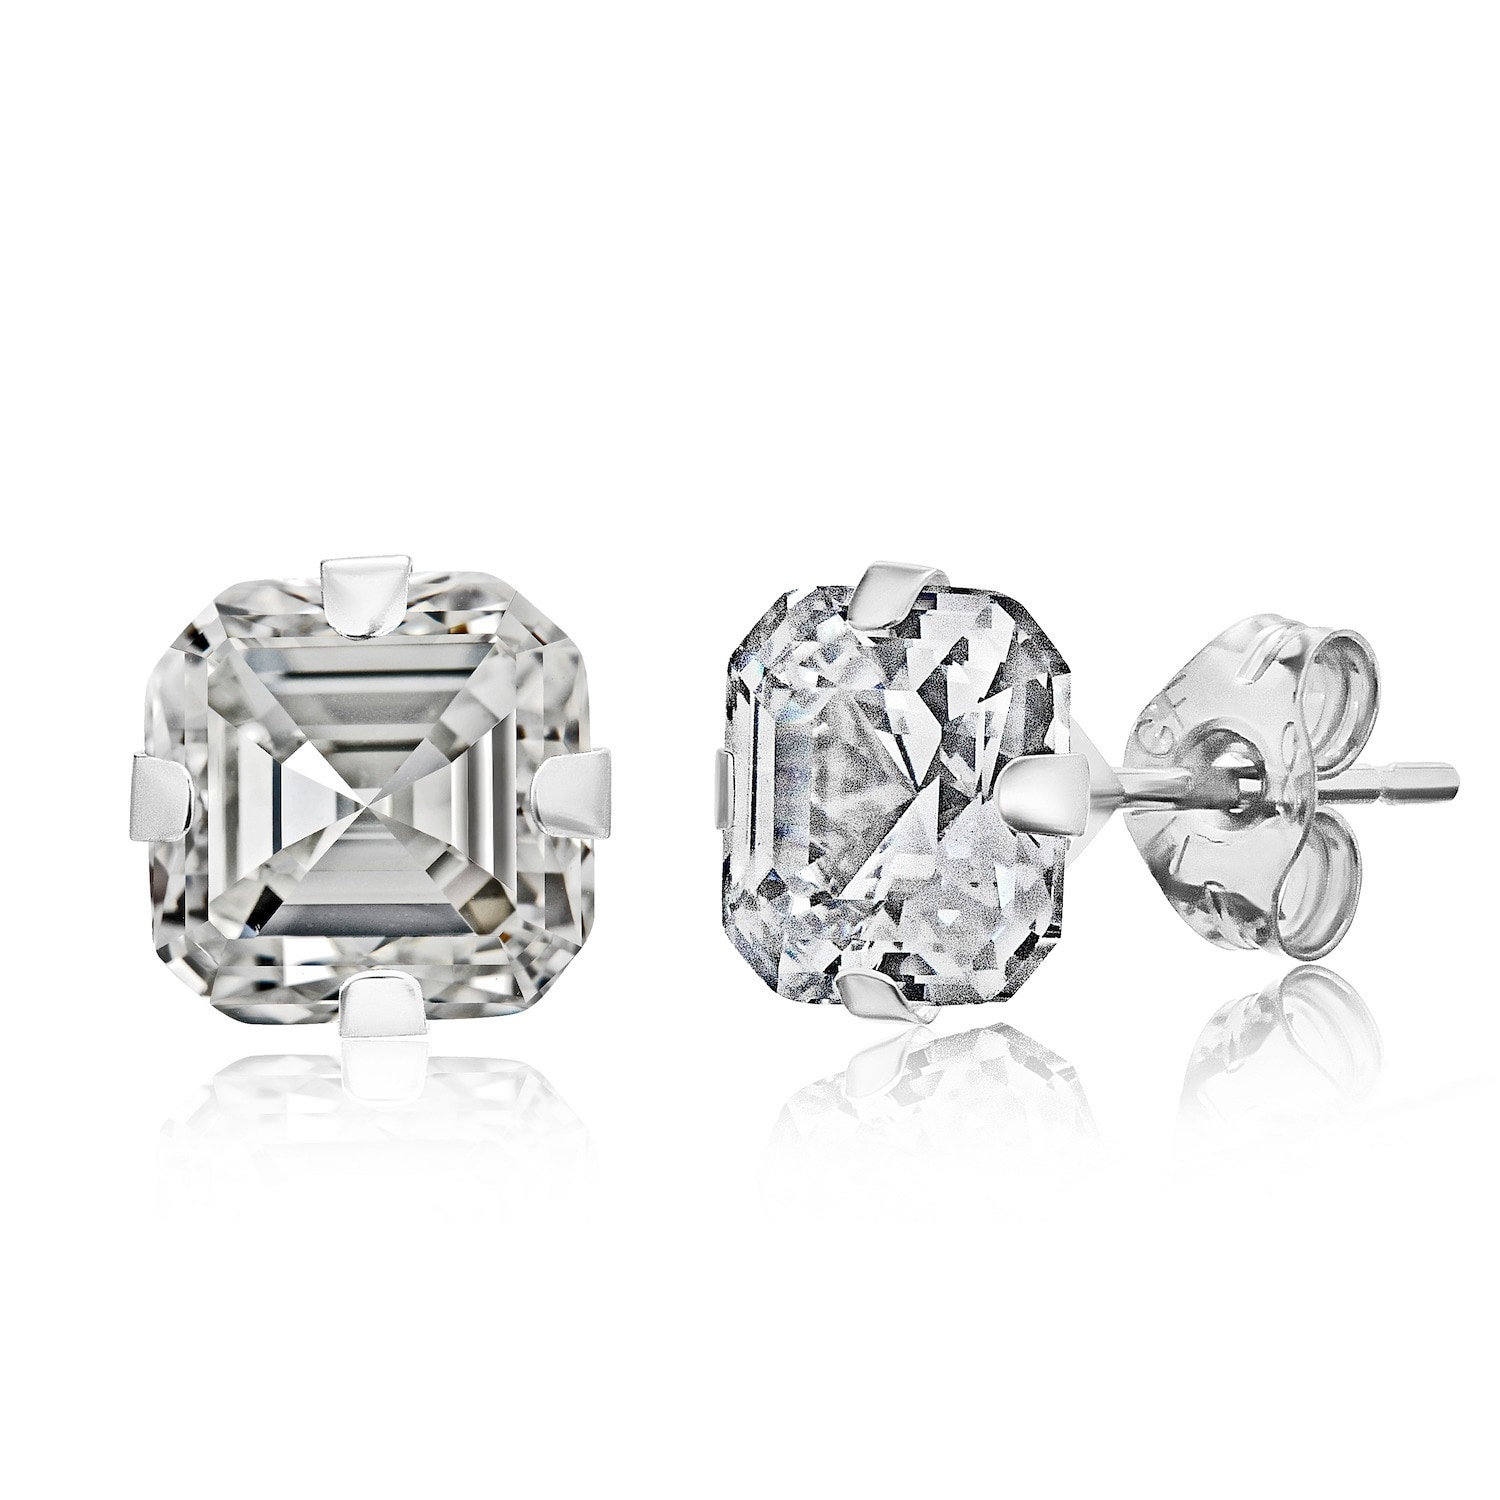 Pori 14k White Gold 6mm Cher Cut Cubic Zirconia Stud Earrings On Free Shipping Orders Over 45 10160850